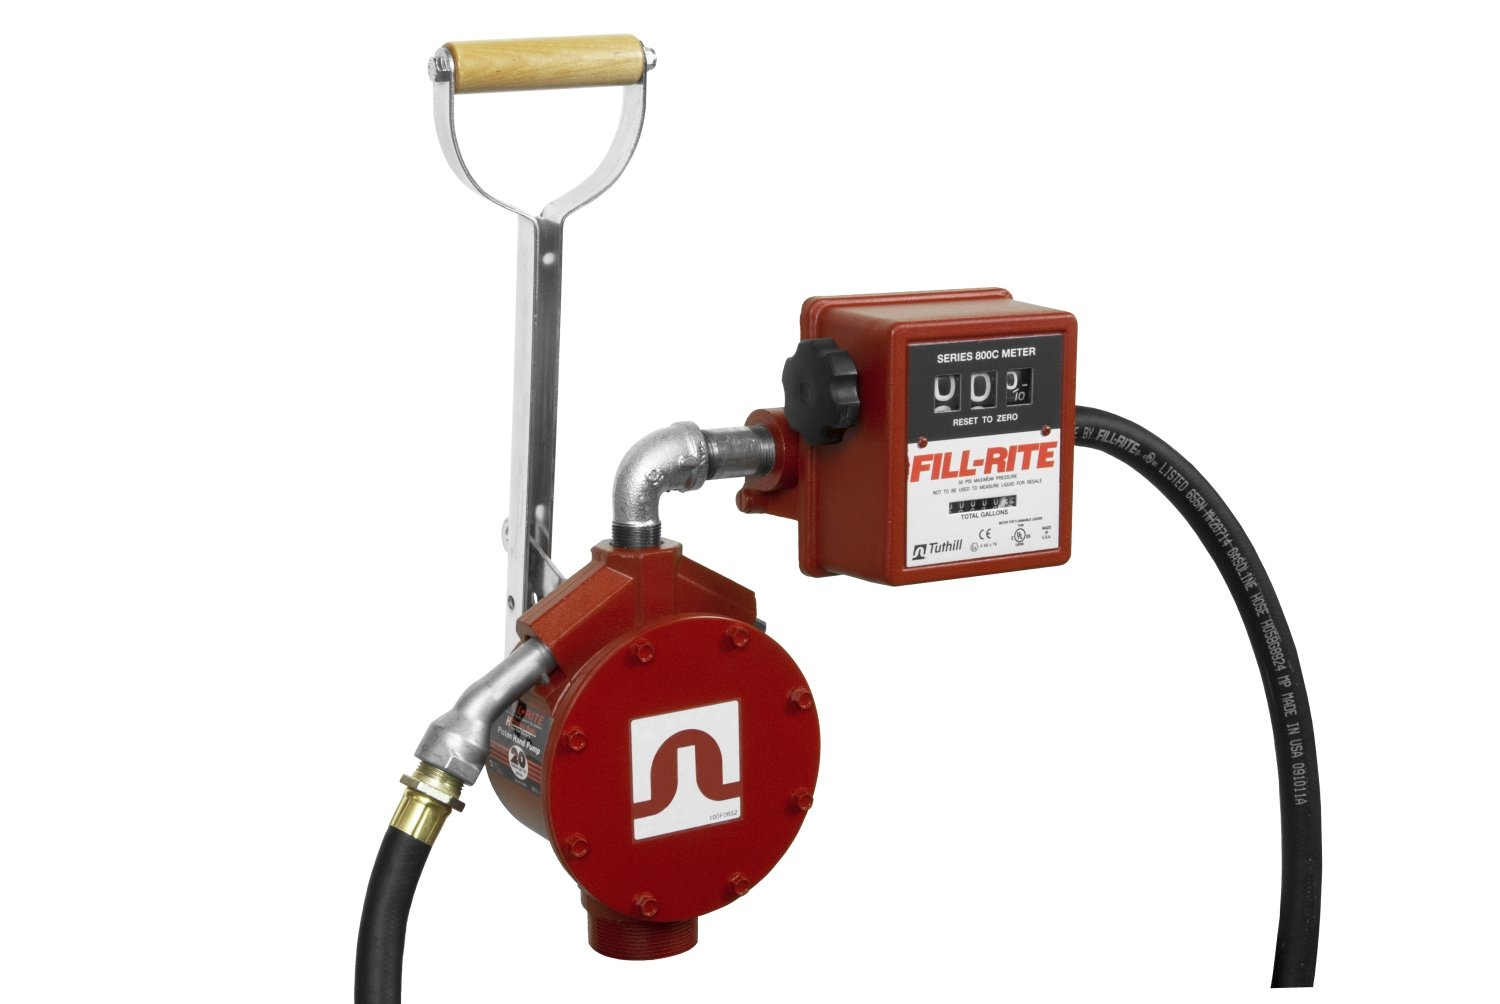 Fill-Rite FR156 Piston Hand Pump with Meter, Suction Pipe, Discharge Hose, and Nozzle Spout